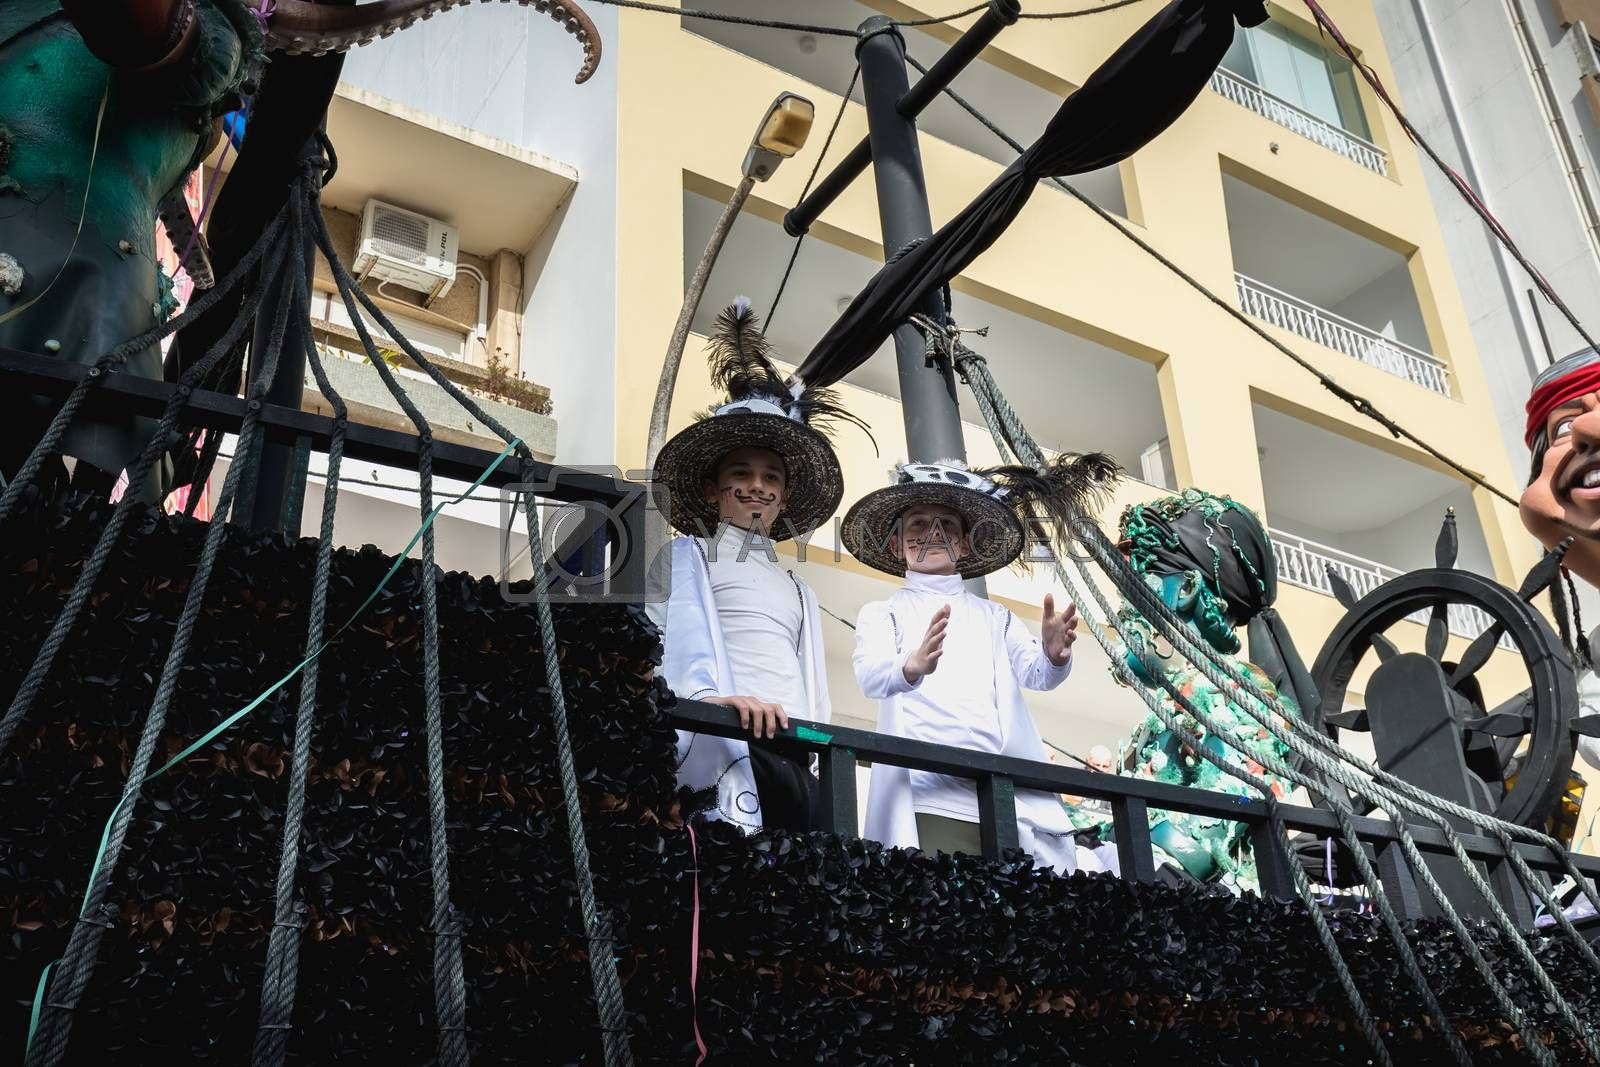 Loule, Portugal - February 25, 2020: Pirate ship float parading in the street in front of the public in the parade of the traditional carnival of Loule city on a February day